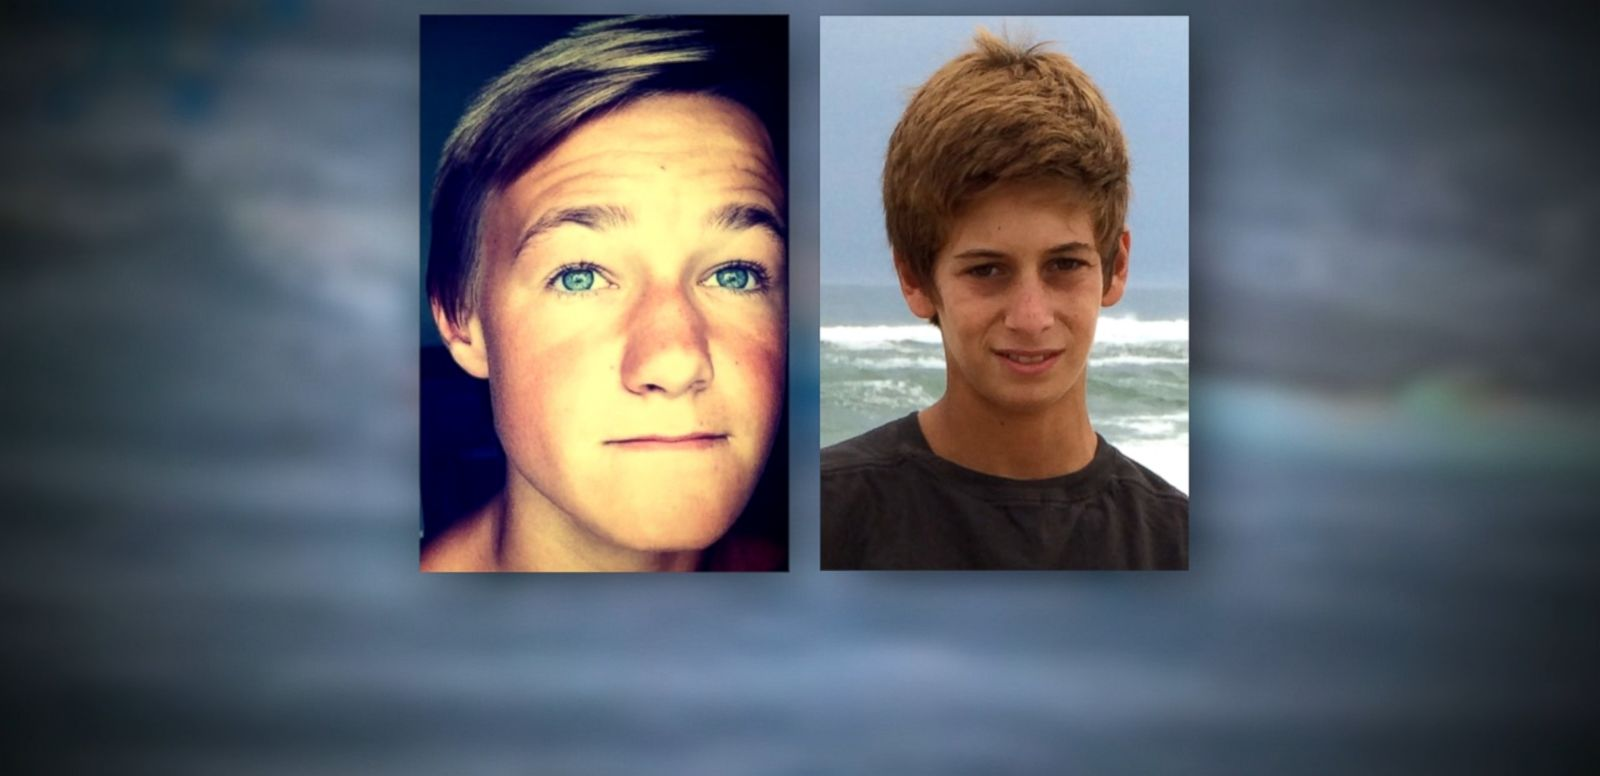 VIDEO: The search for Austin Stephanos and Perry Cohen, both 14, will be suspended at sunset tonight, Capt. Mark Fedor, of the Coast Guard's 7th District in Miami, said at a news conference today.